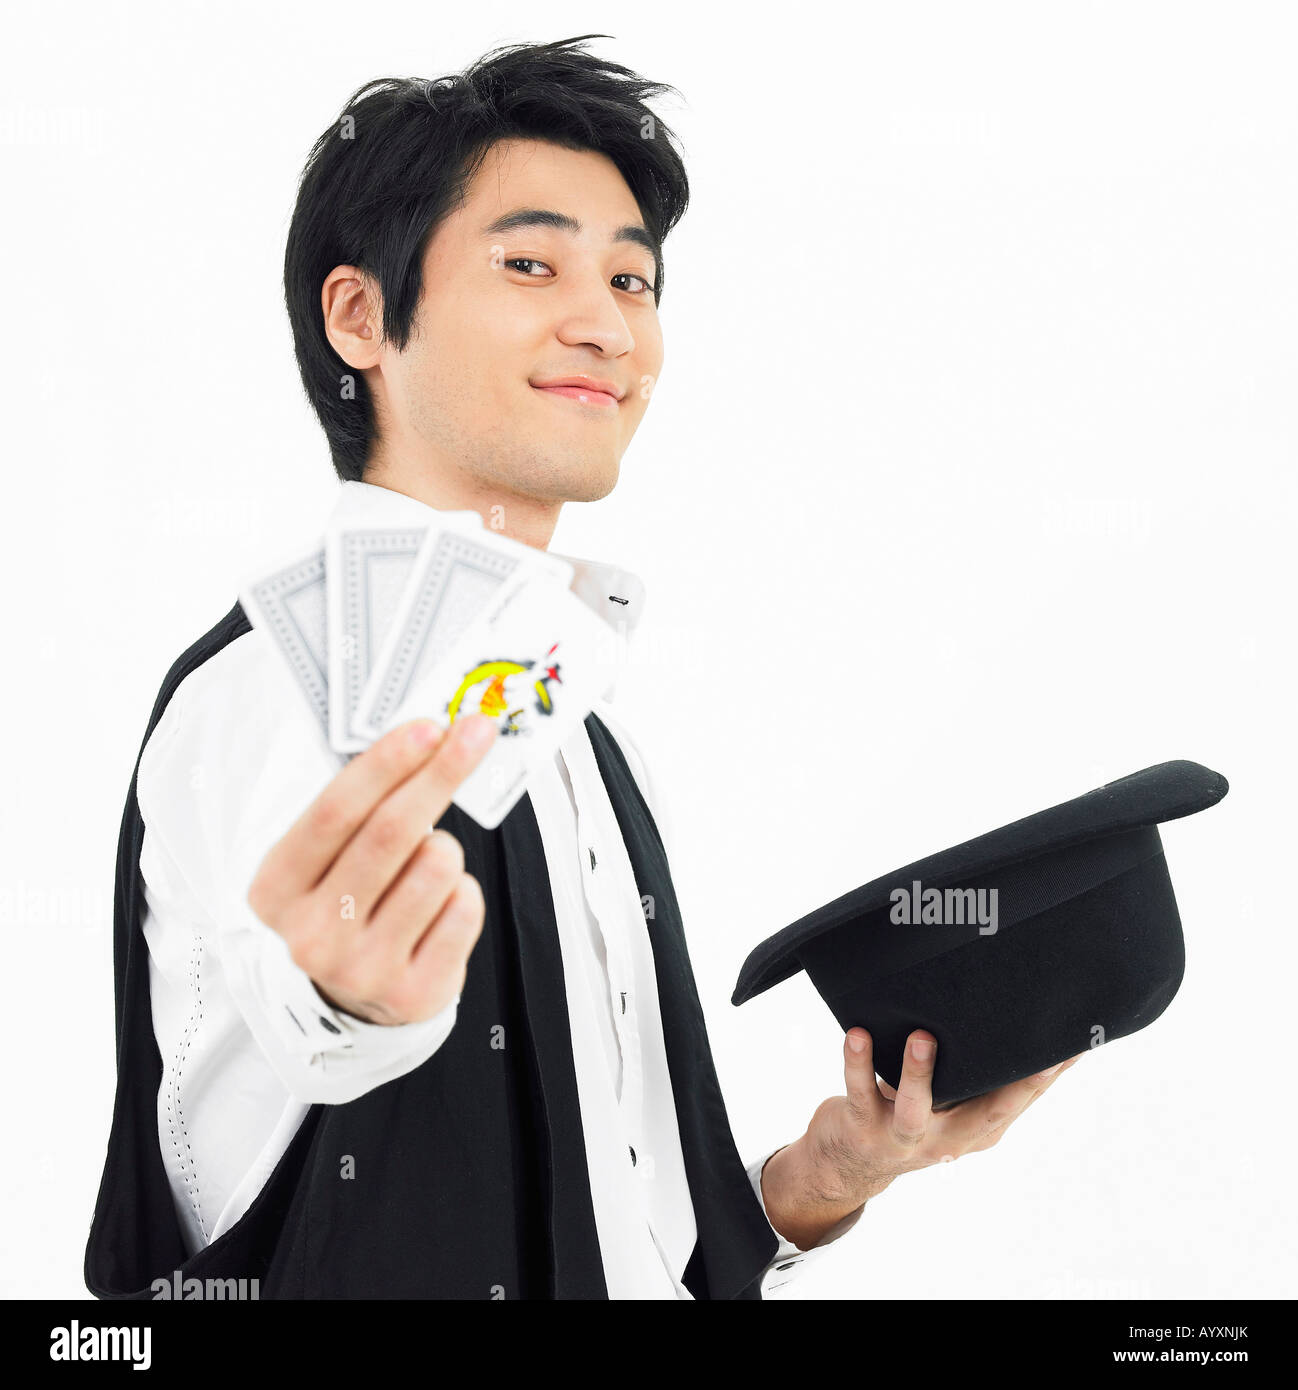 man holding black hat and card stock photo royalty image stock photo man holding black hat and card